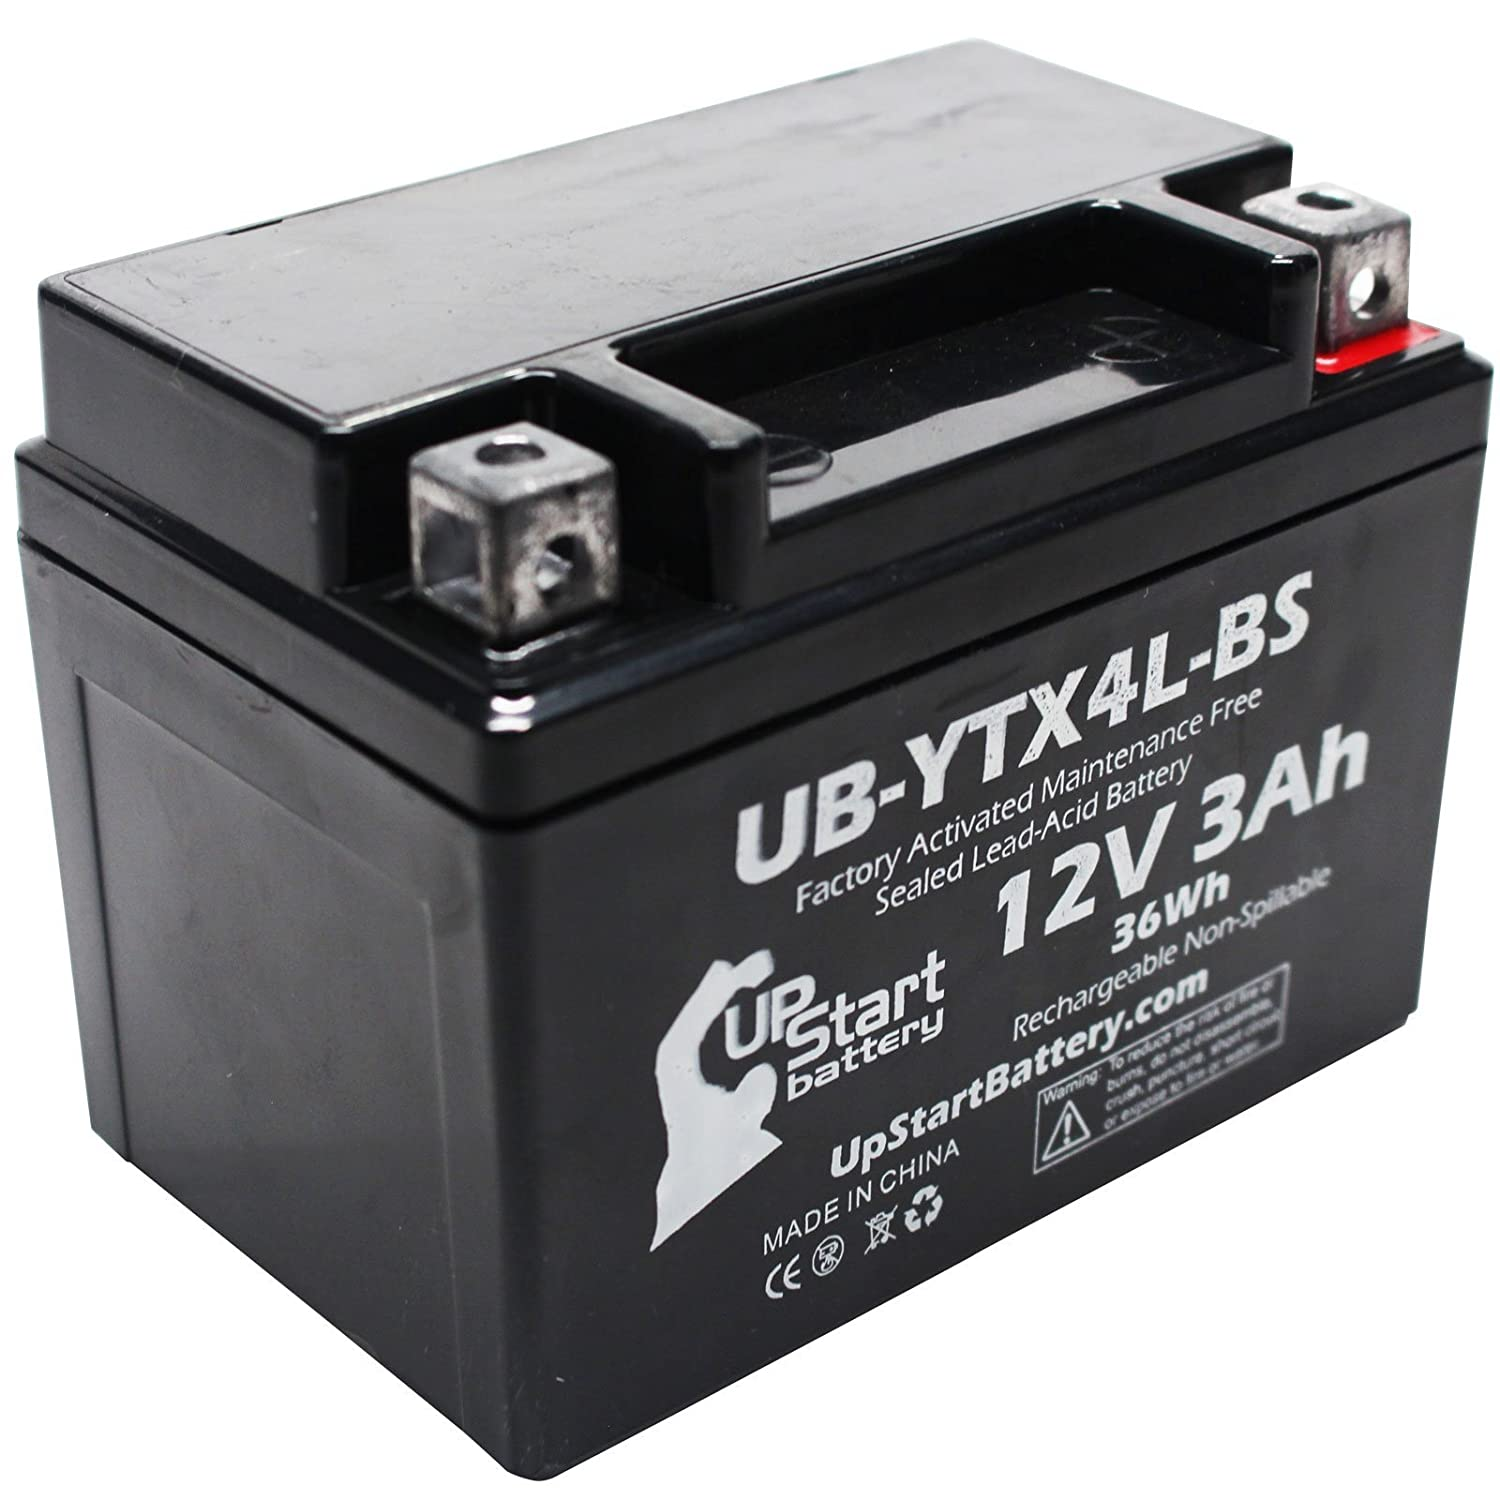 Replacement 2001 Polaris Scrambler, Sportsman 90CC Factory Activated, Maintenance Free, ATV Battery - 12V, 3Ah, UB-YTX4L-BS Upstart Battery UB-YTX4L-BS-DL42